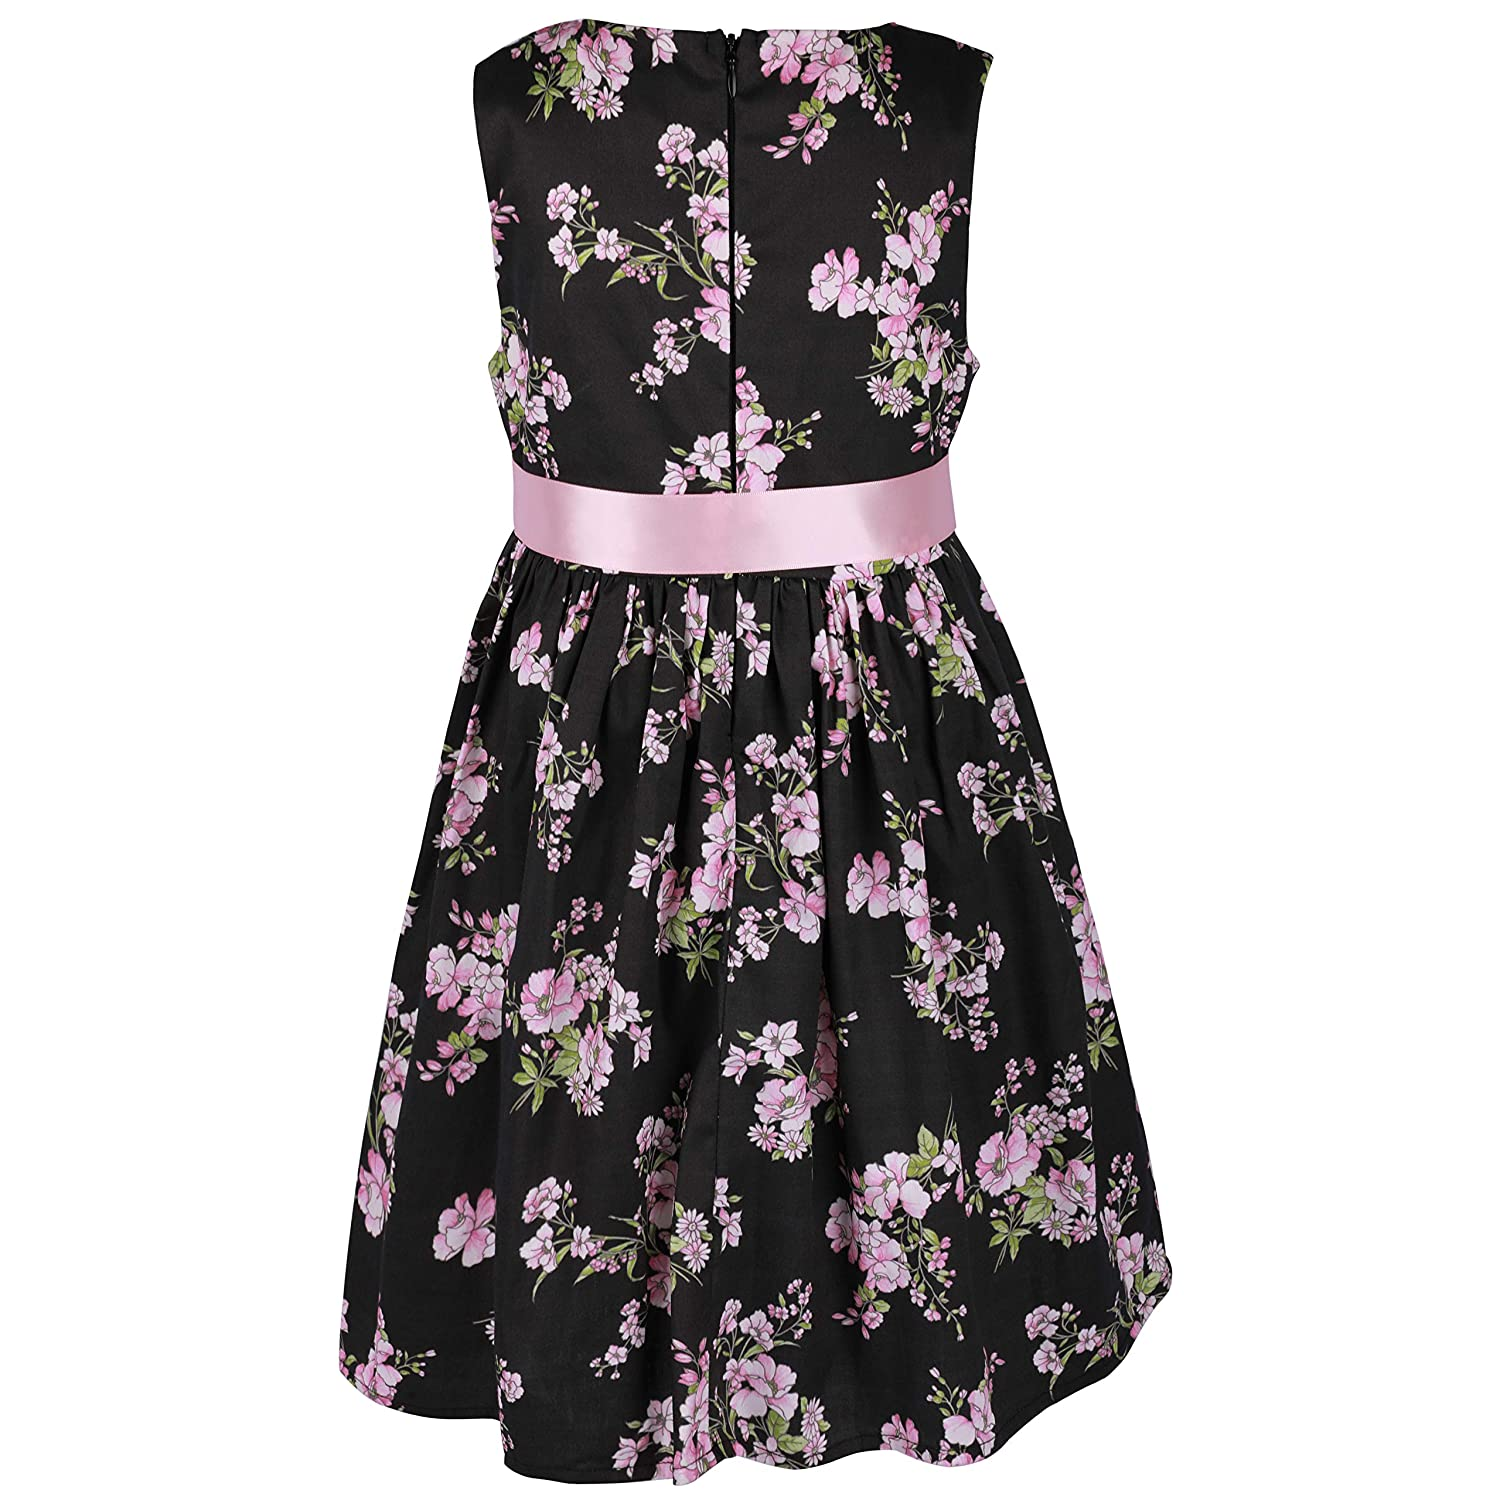 Boutique Toddler Baby Kids Girl Princess Summer Casual Dress Sundress Clothes Girls' Clothing Mother & Kids